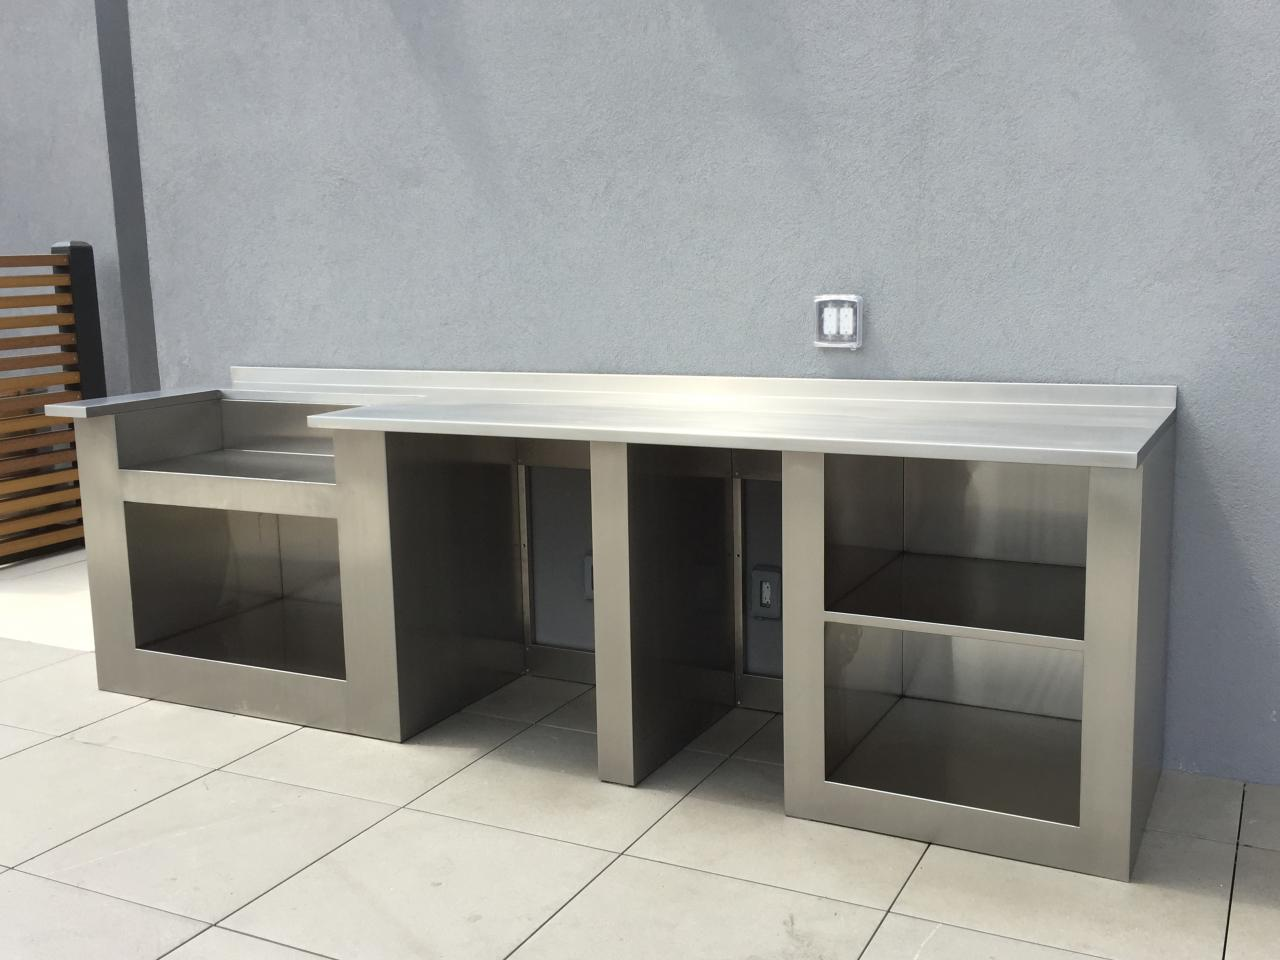 Outdoor Stainless Steel Cabinets J And J Stainless Steel Supplies Inc Outdoor Bbq Cabinets